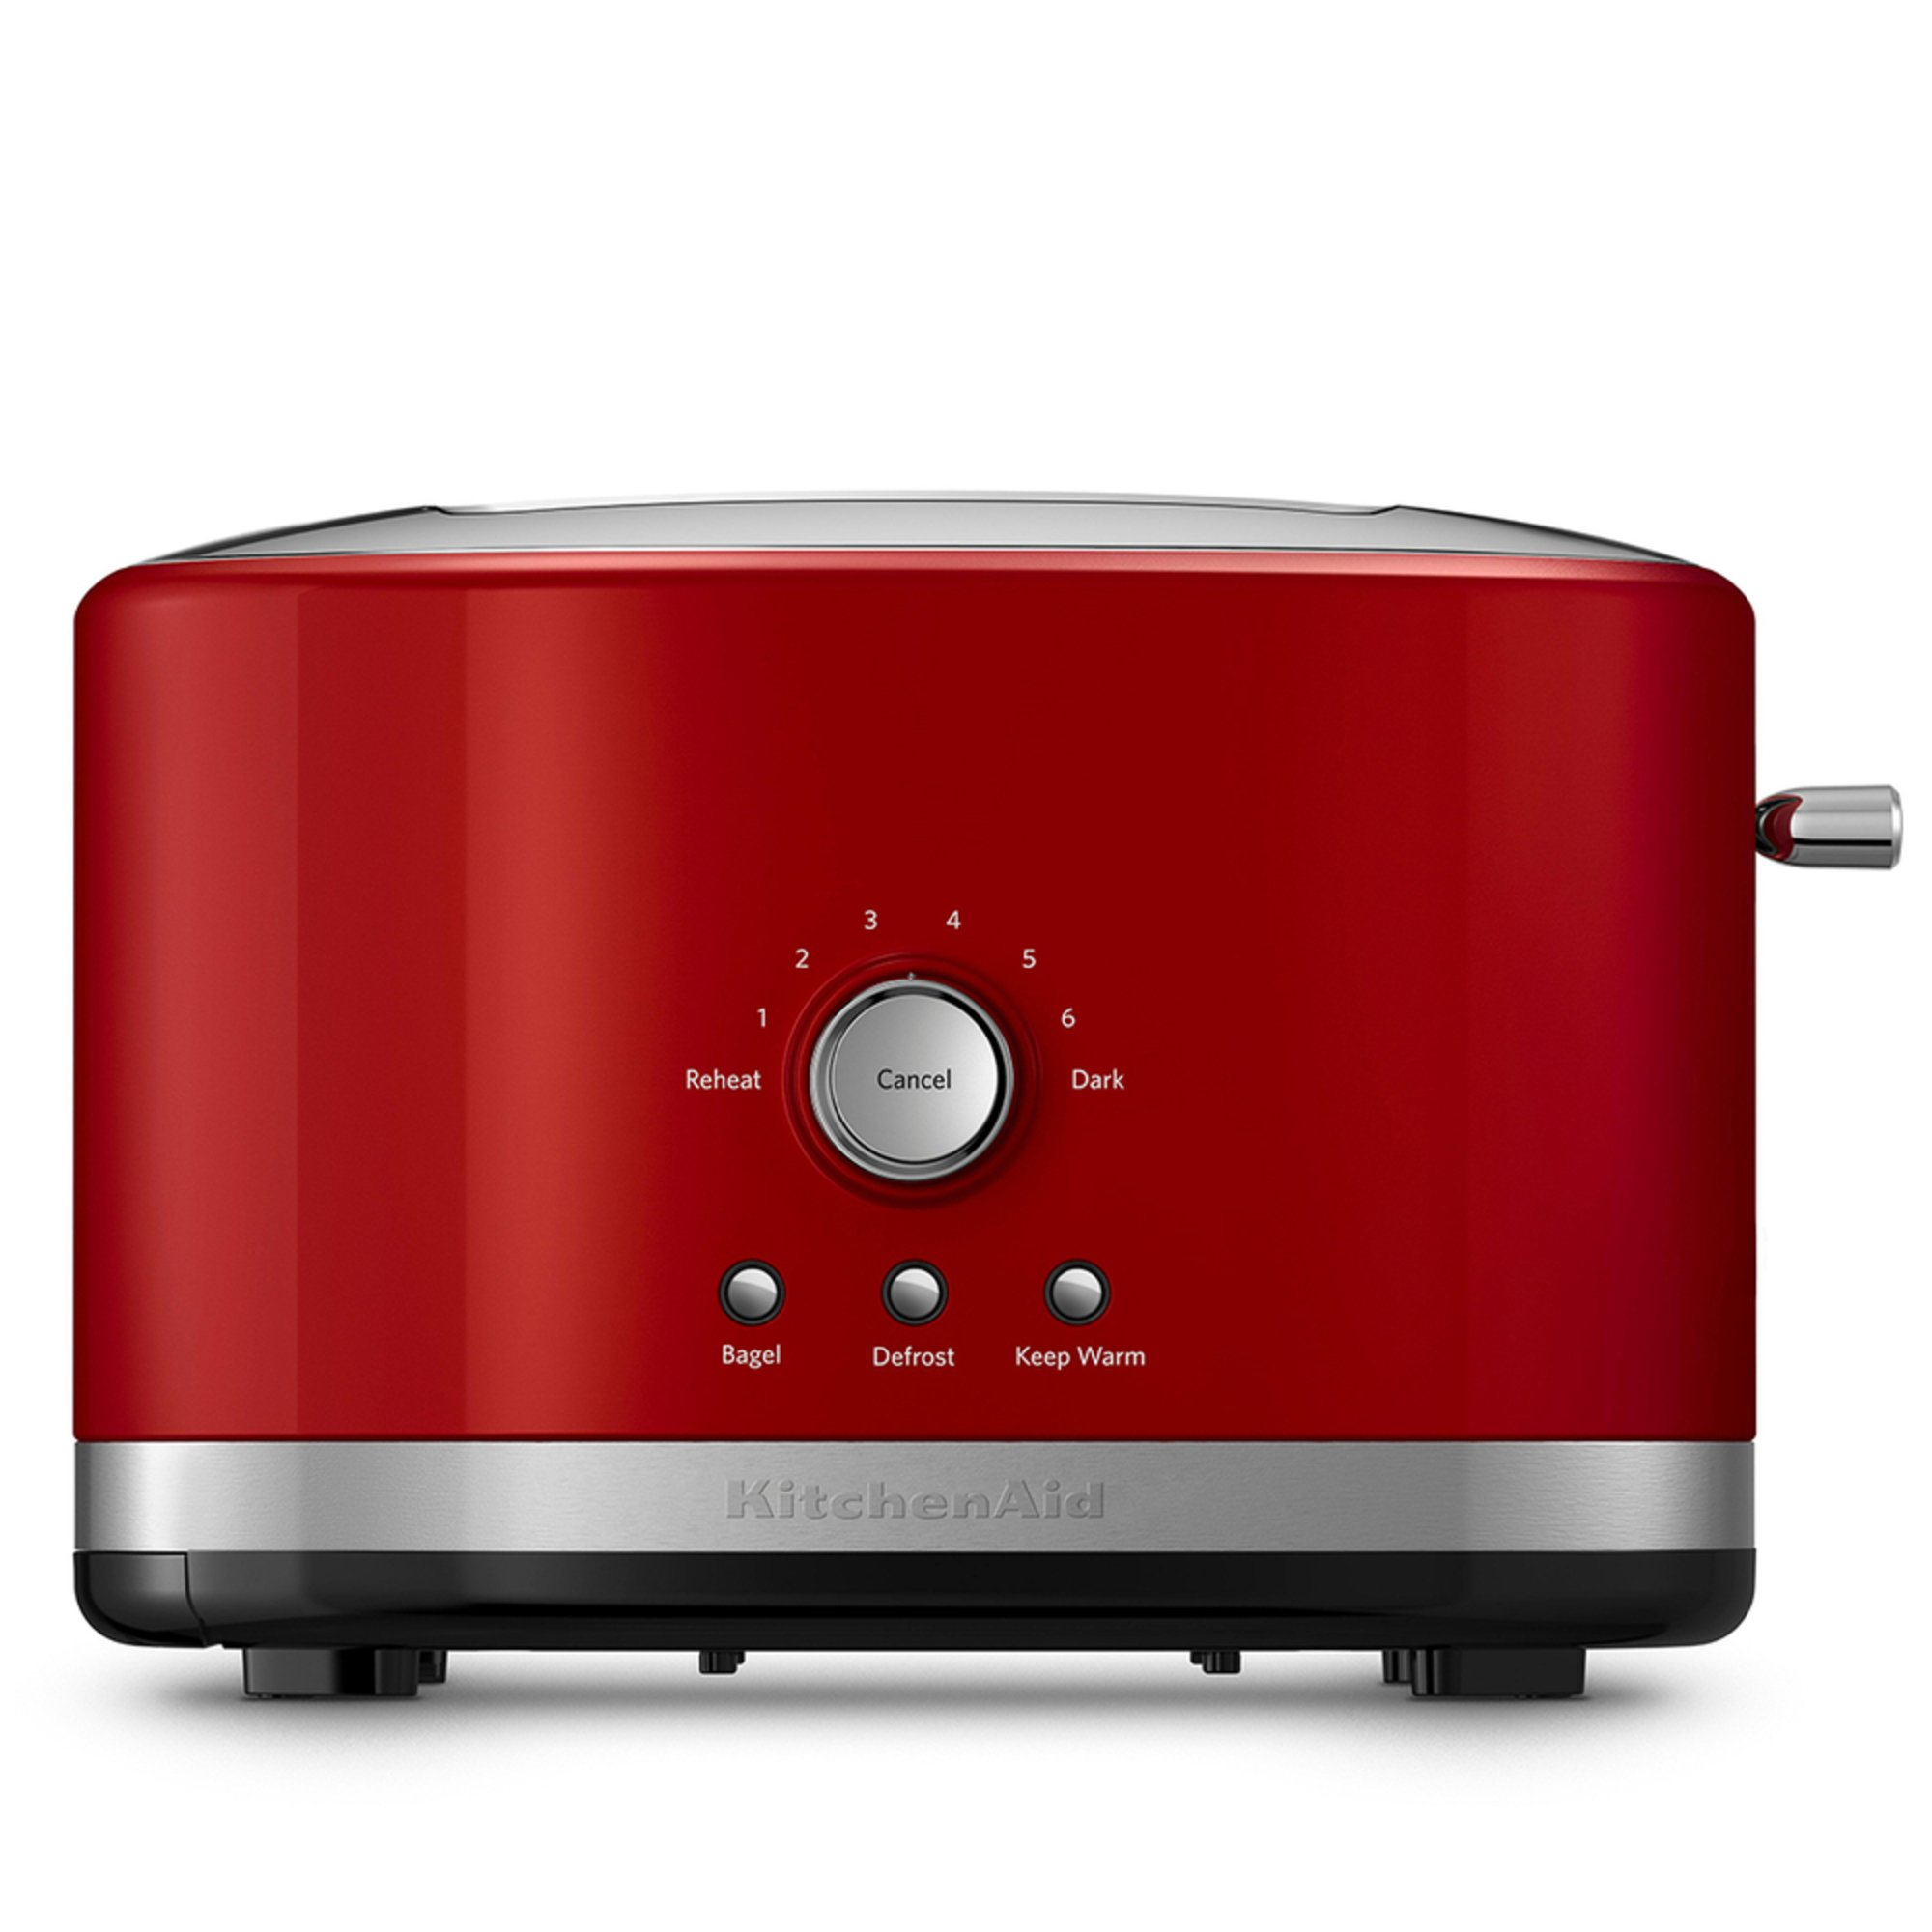 Product Description. Make a statement on your counter with the newly designed KitchenAid 4-Slice Toaster, which accommodates a variety of shapes and sizes of Artisan breads.